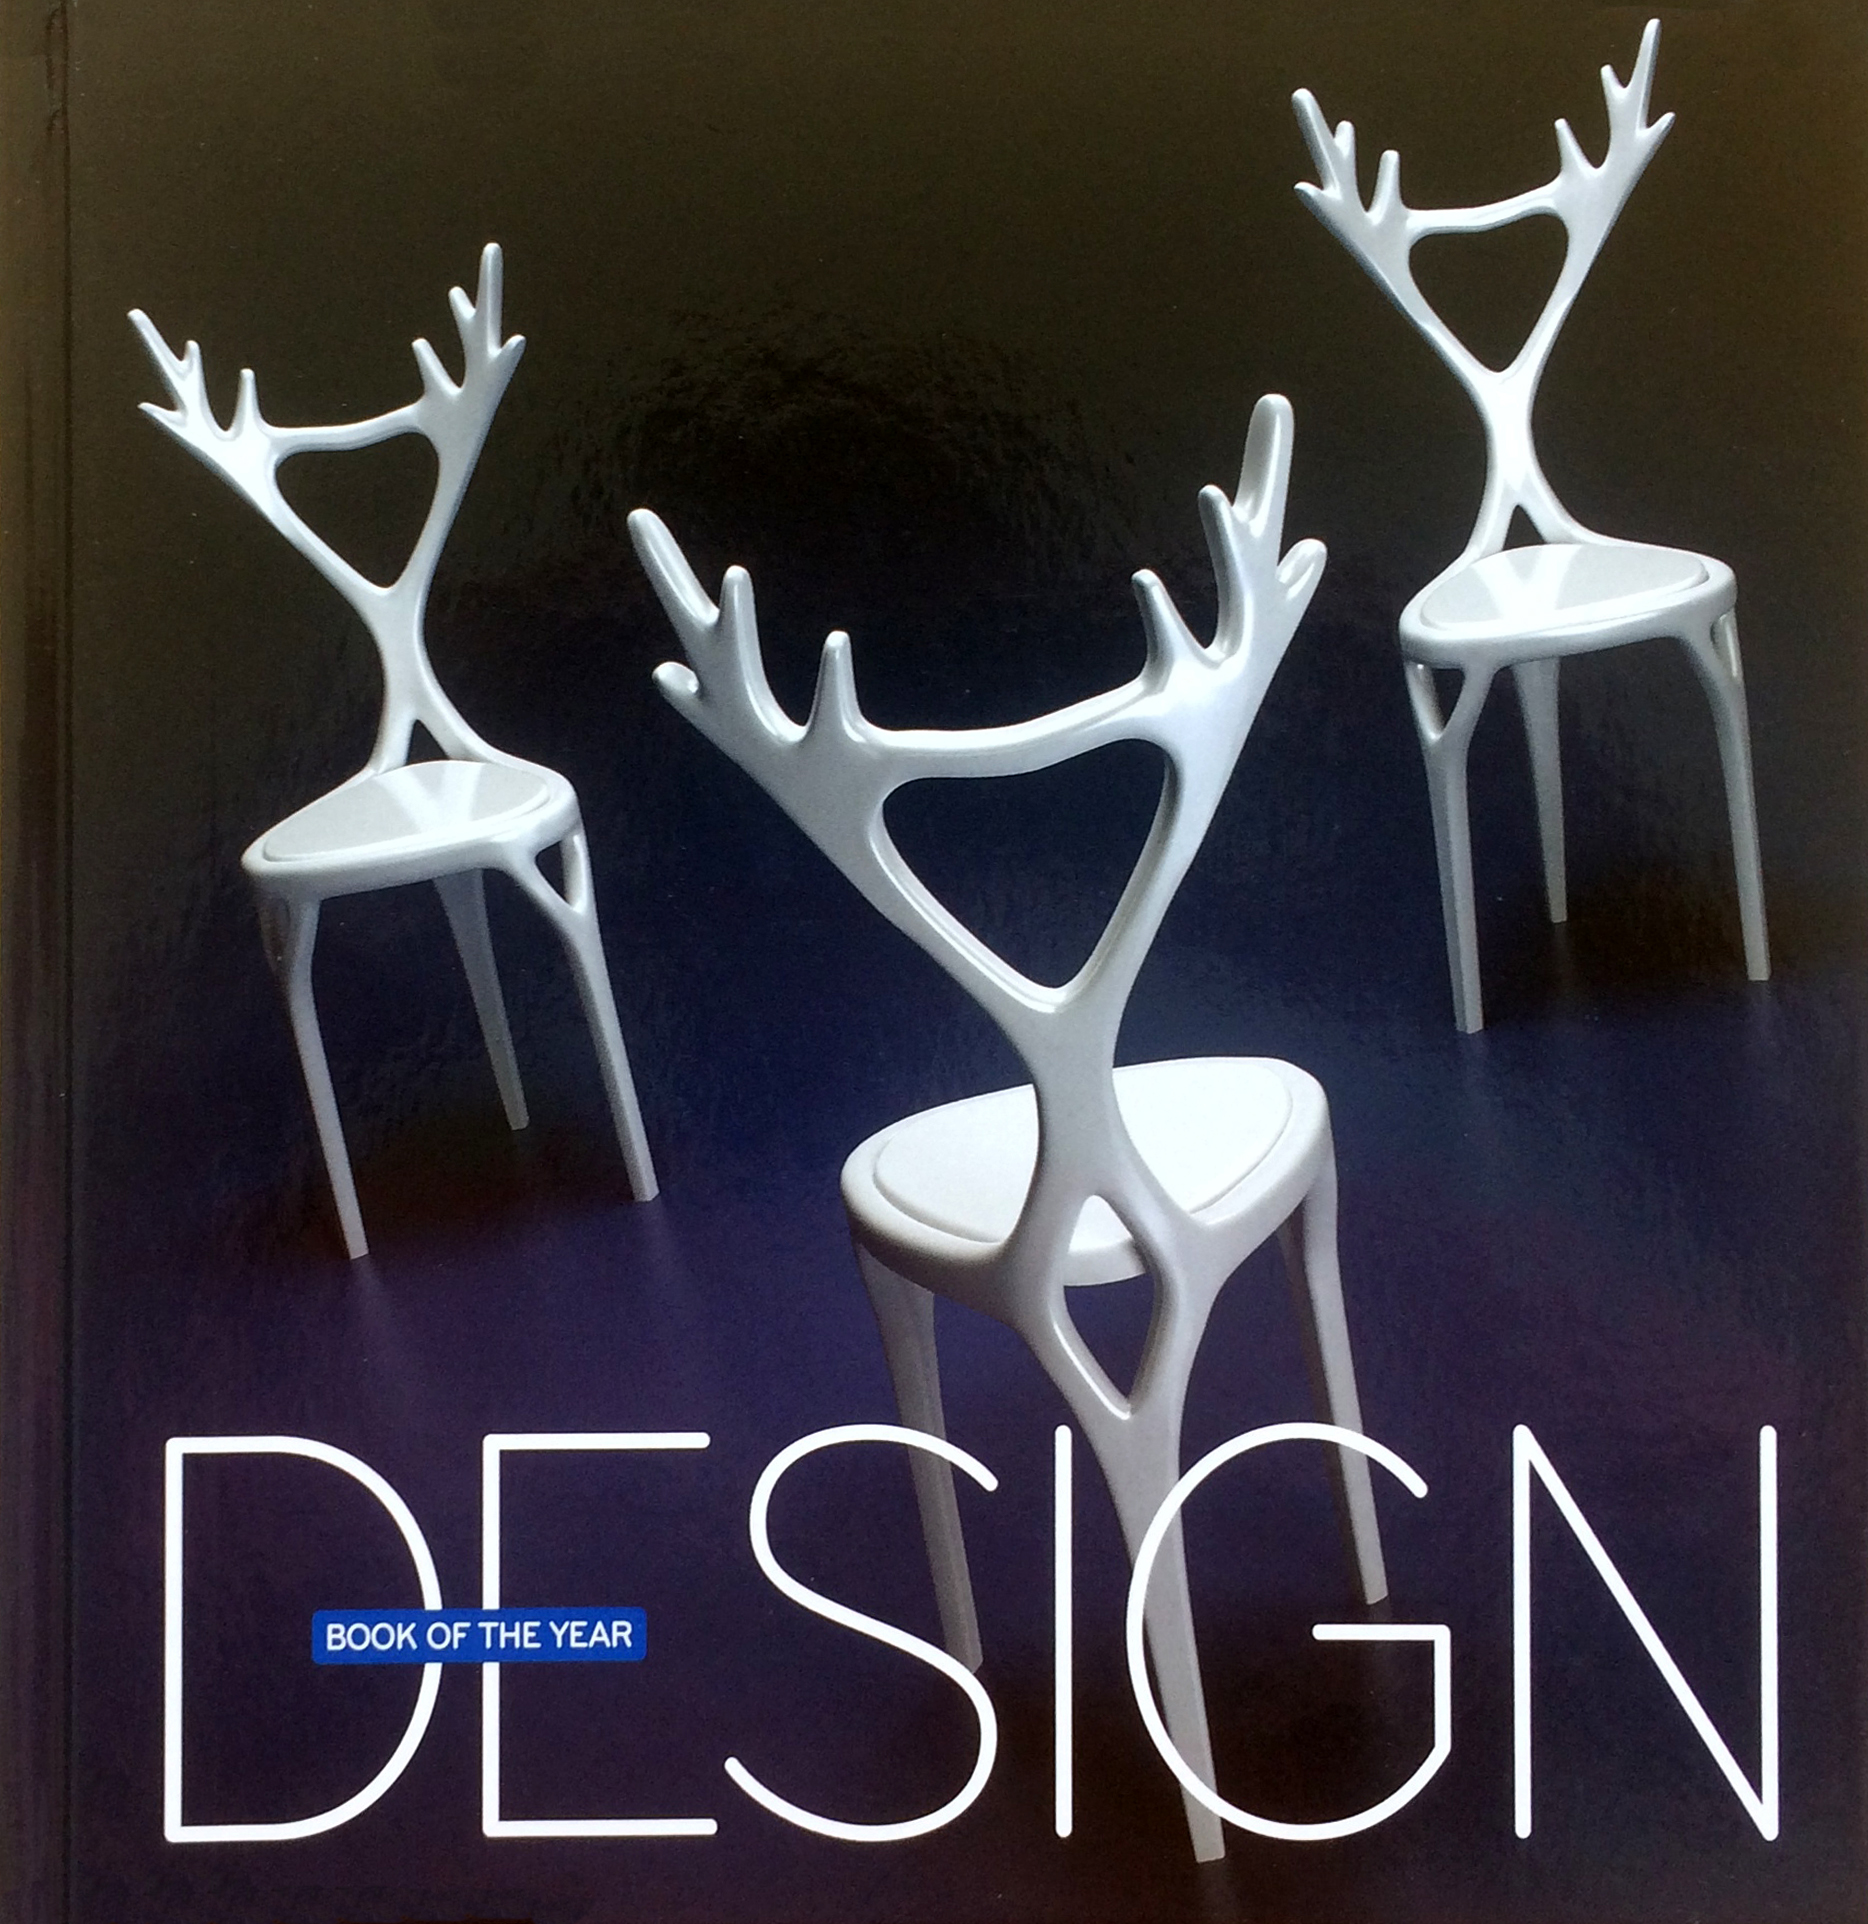 Design and Design Book of the Year Volume 5